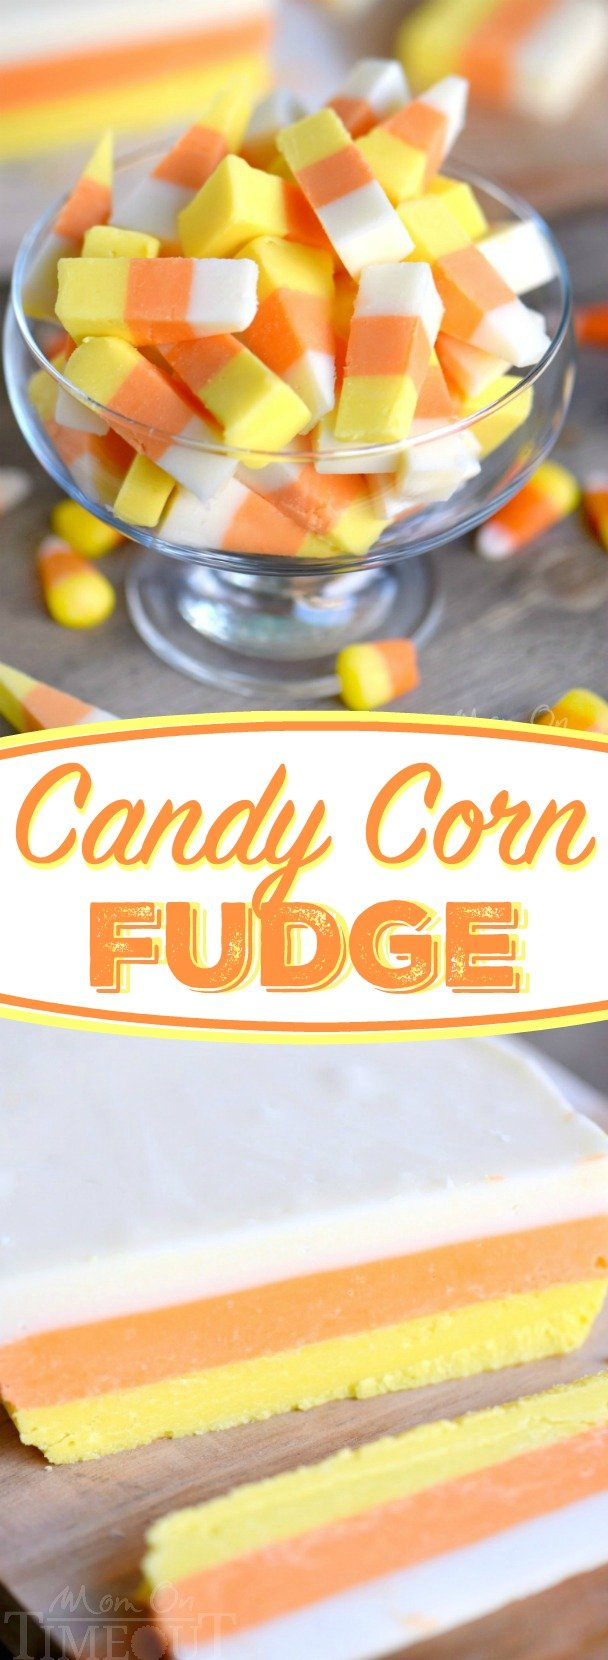 candy-corn-fudge-recipe-collage